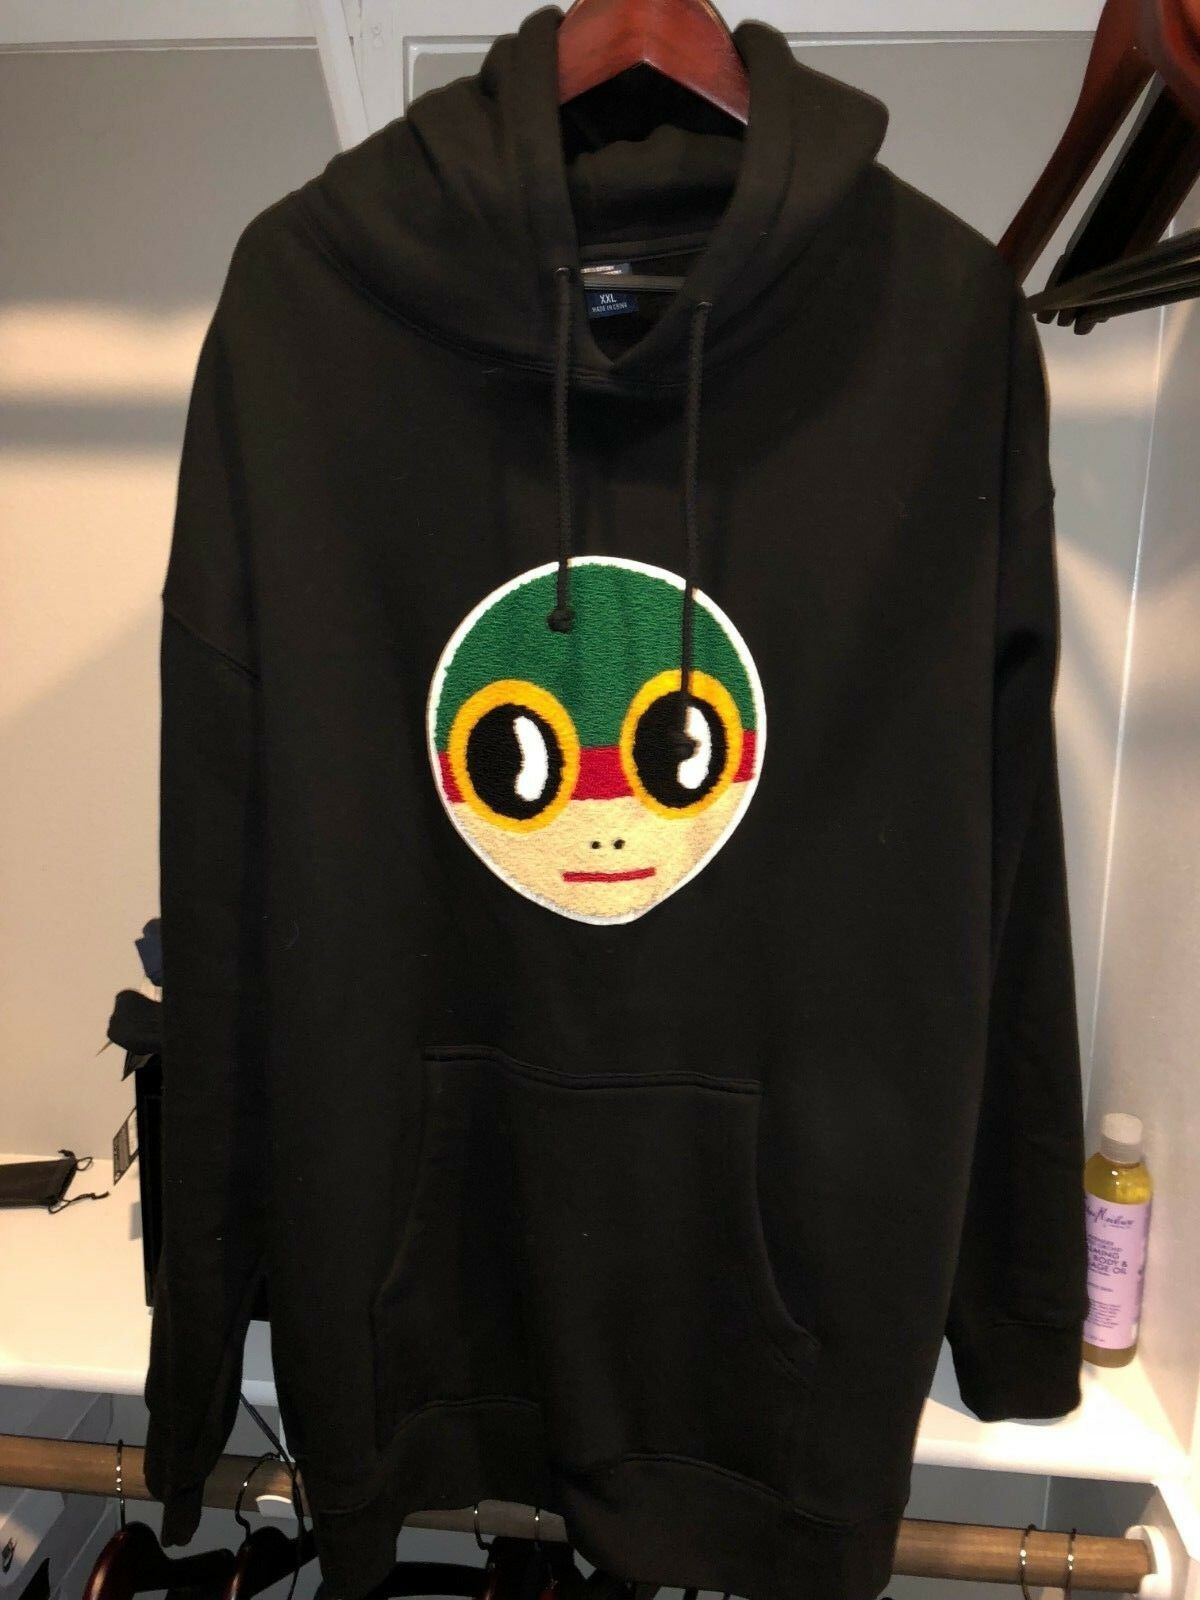 Brand New 2013 Hebru Brantley FlyBoy Sweatshirt XXL